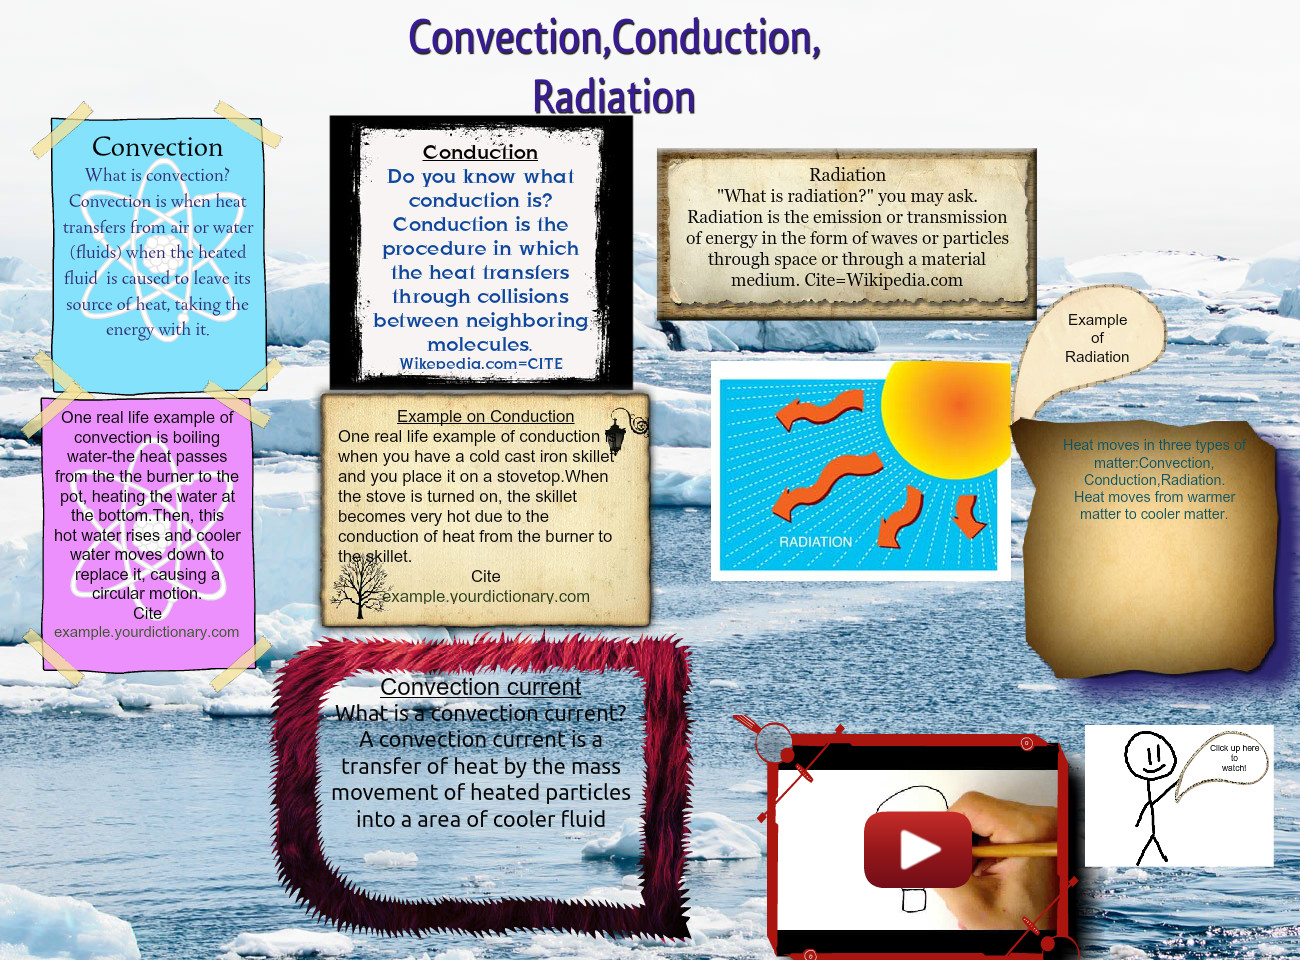 Convenction Conduction Radiation Conduction Convection Cycles